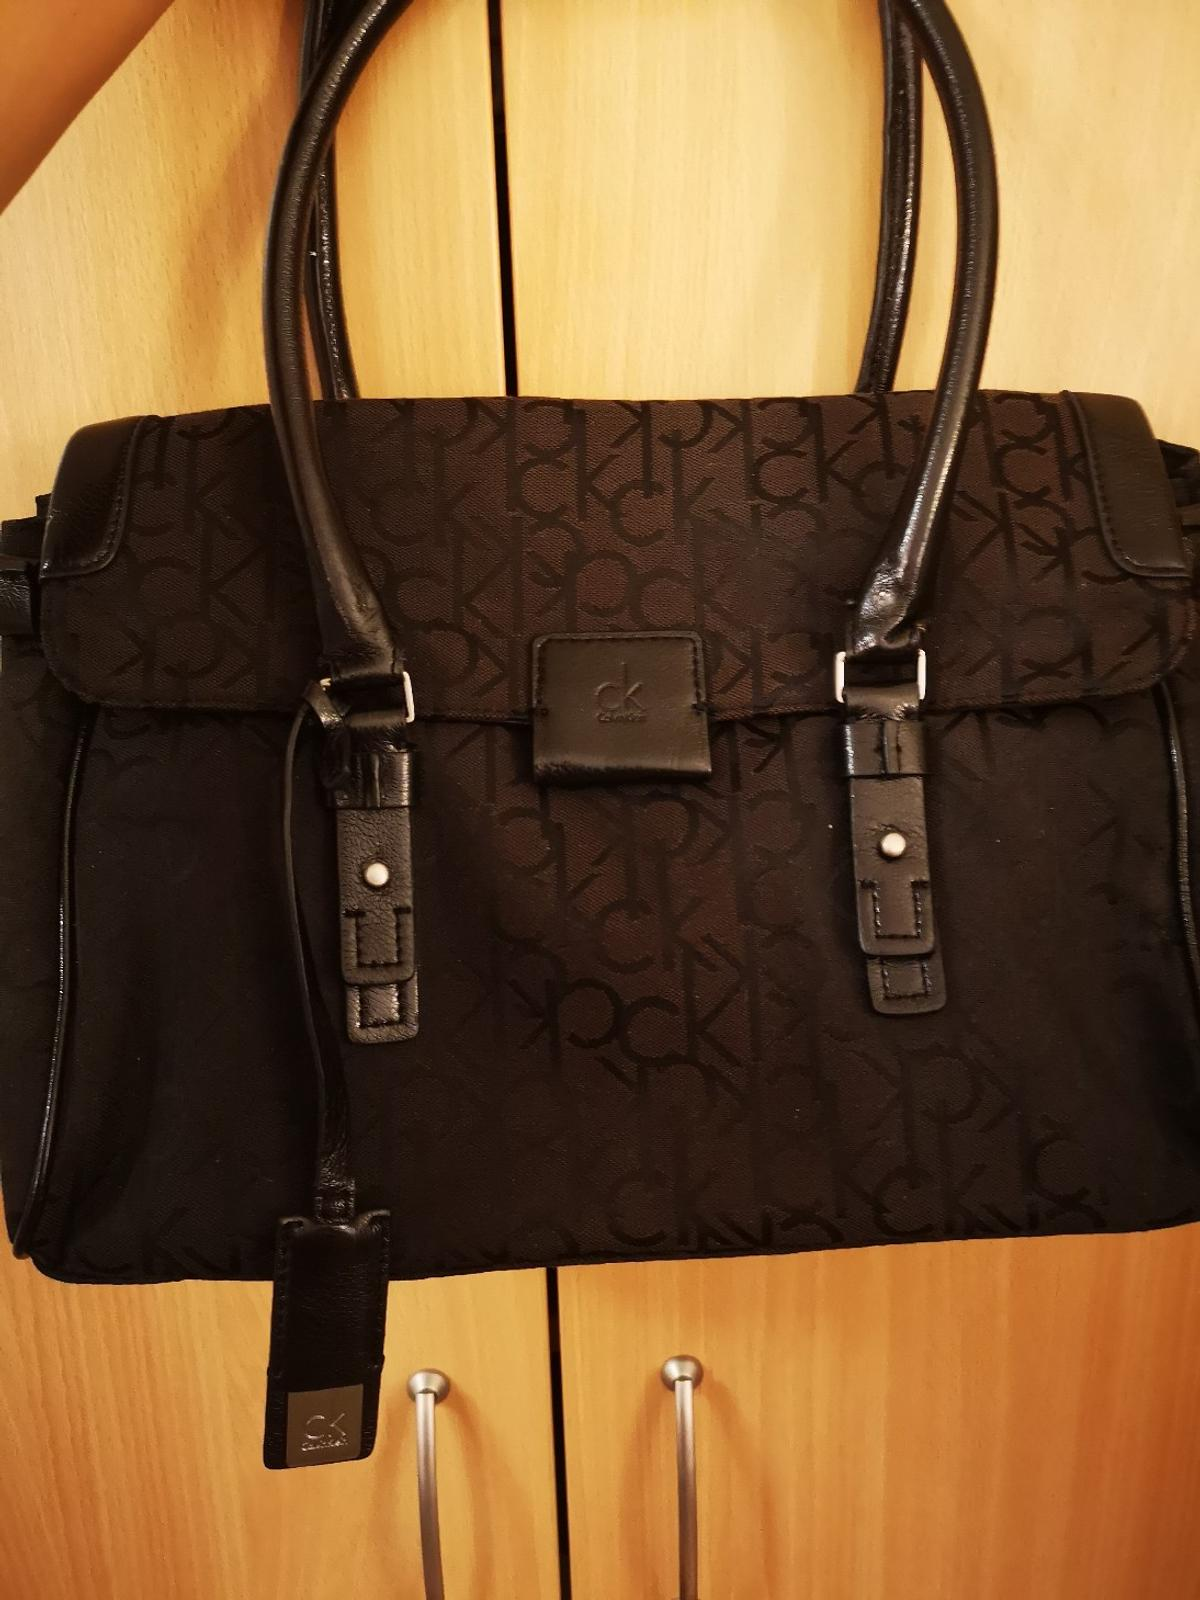 389c8d3edbcd8 Calvin Klein Tasche in 1210 Vienna for €32.00 for sale - Shpock